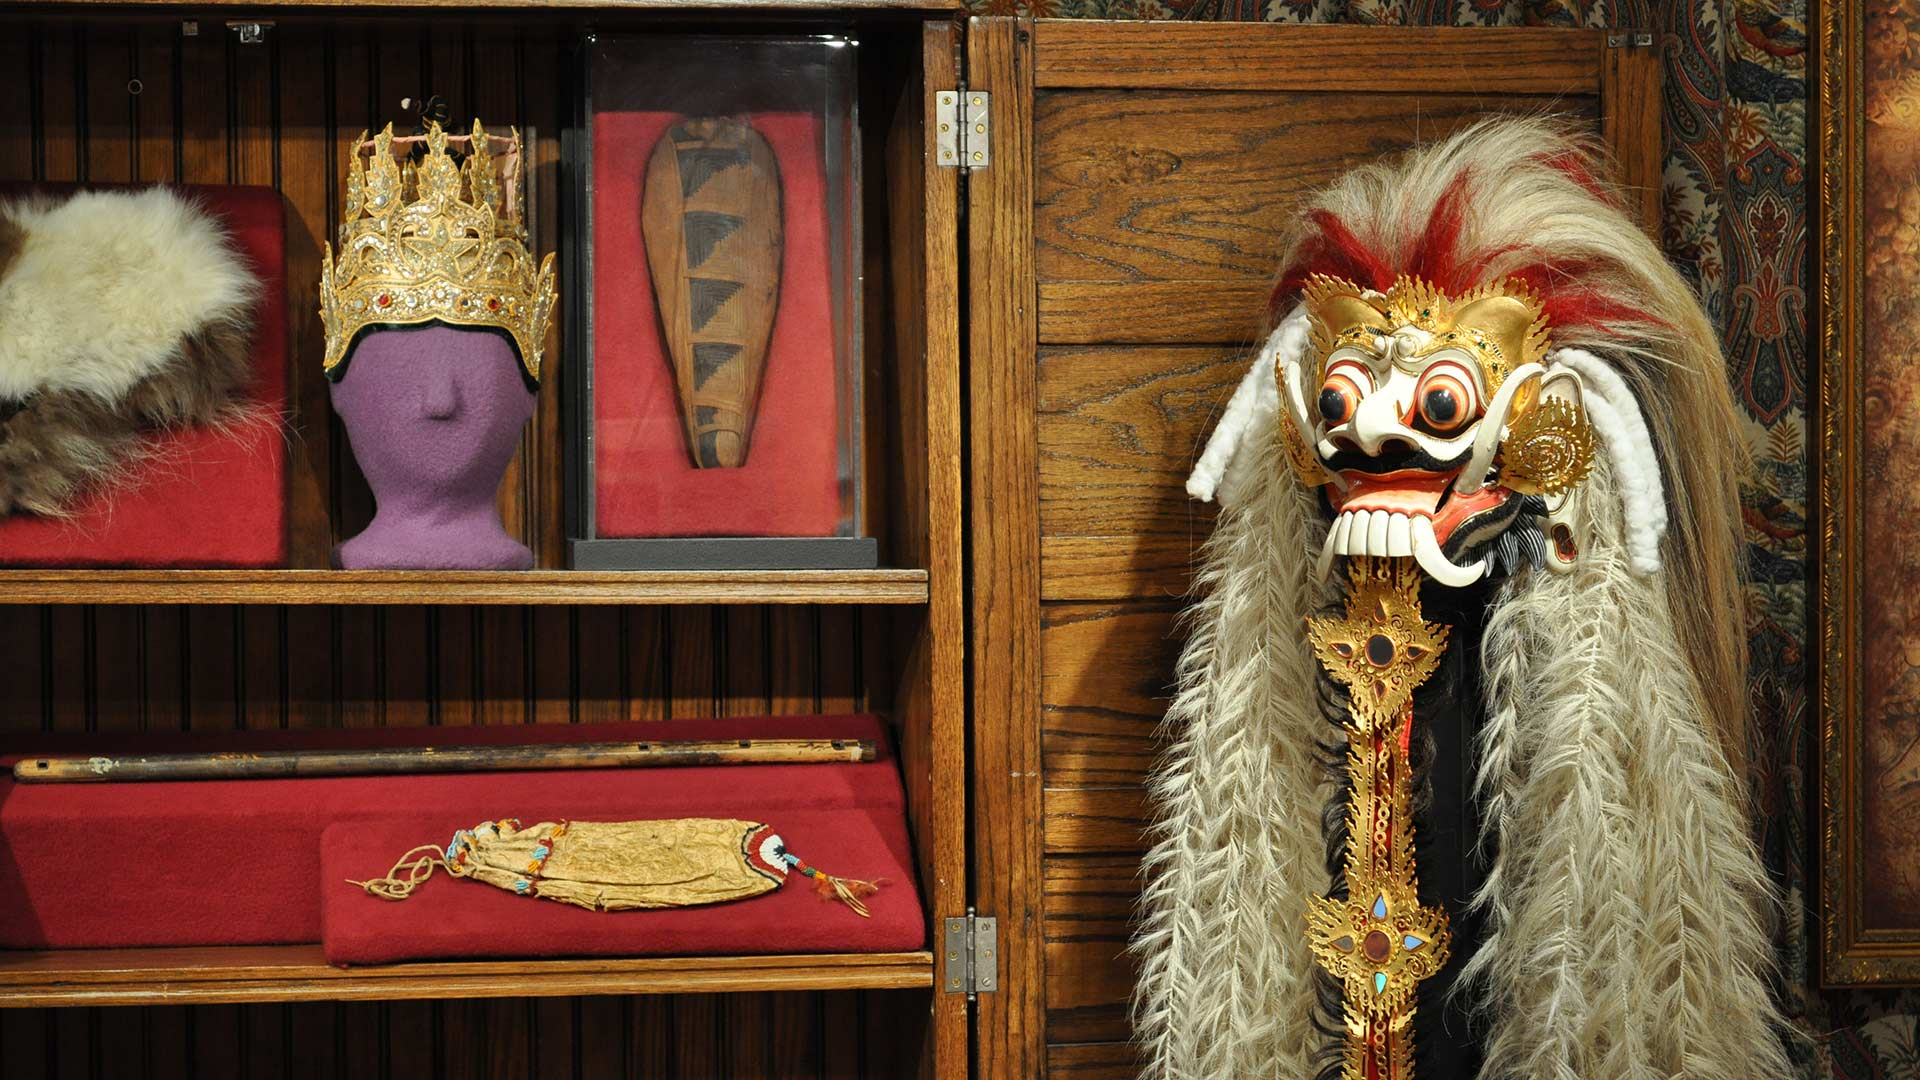 head mask, crown, fur, wooden object and fringe